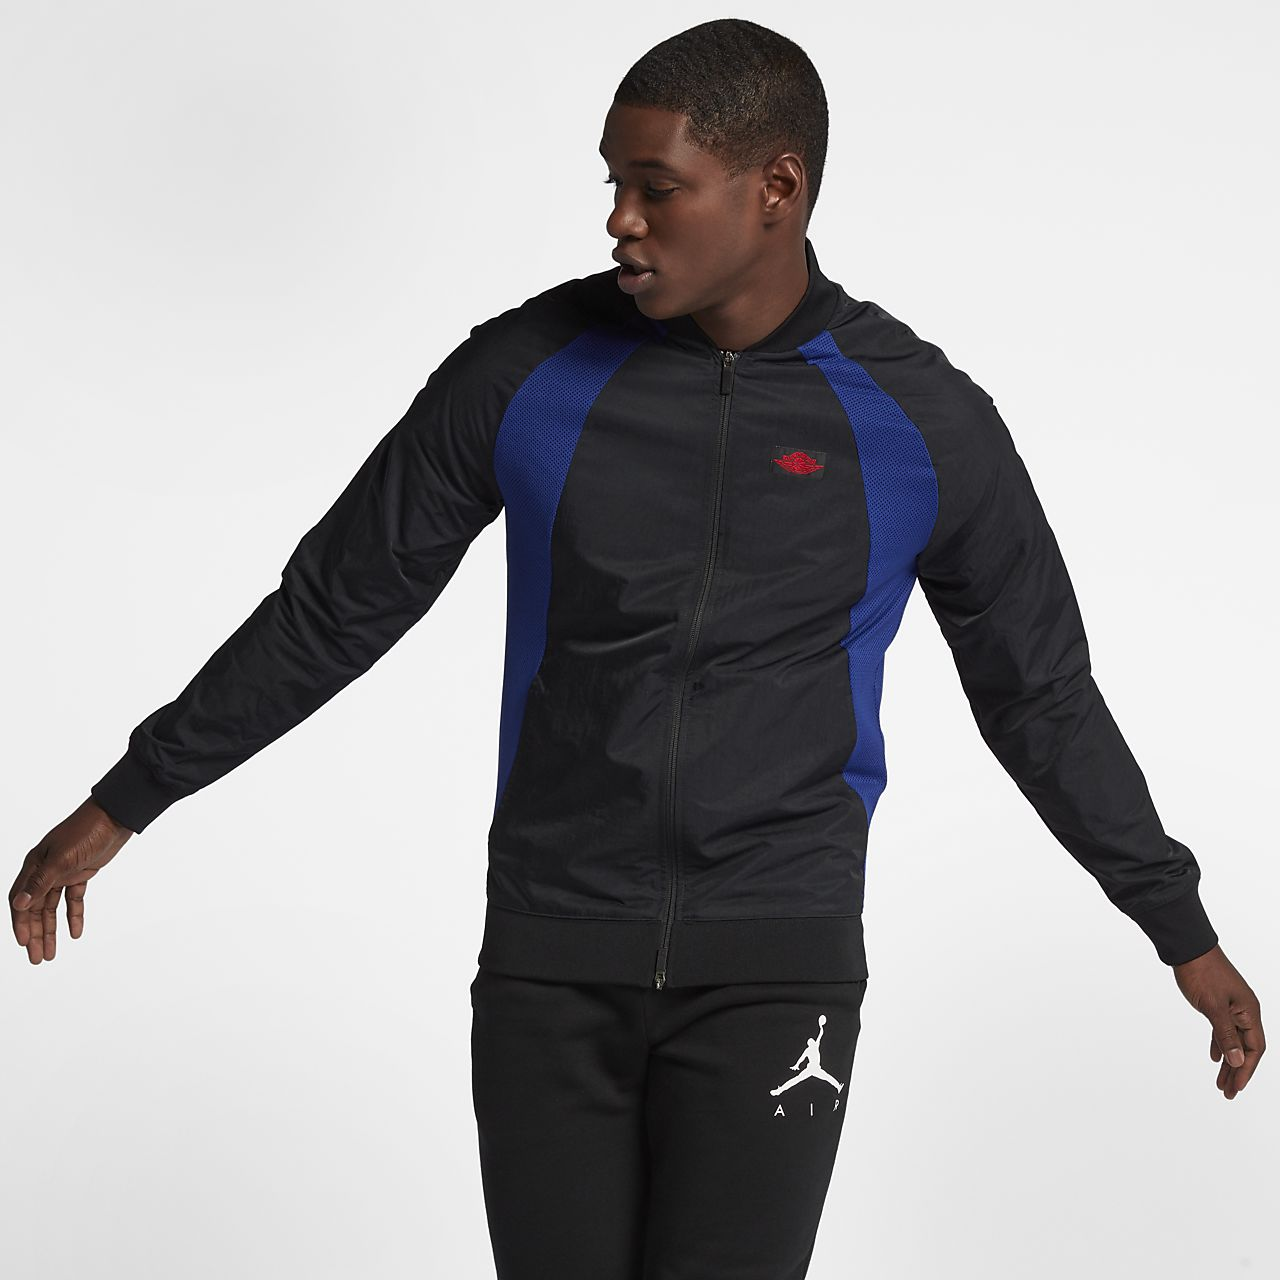 71376cdfa69 Air Jordan 1 Wings Men's Jacket. Nike.com PT